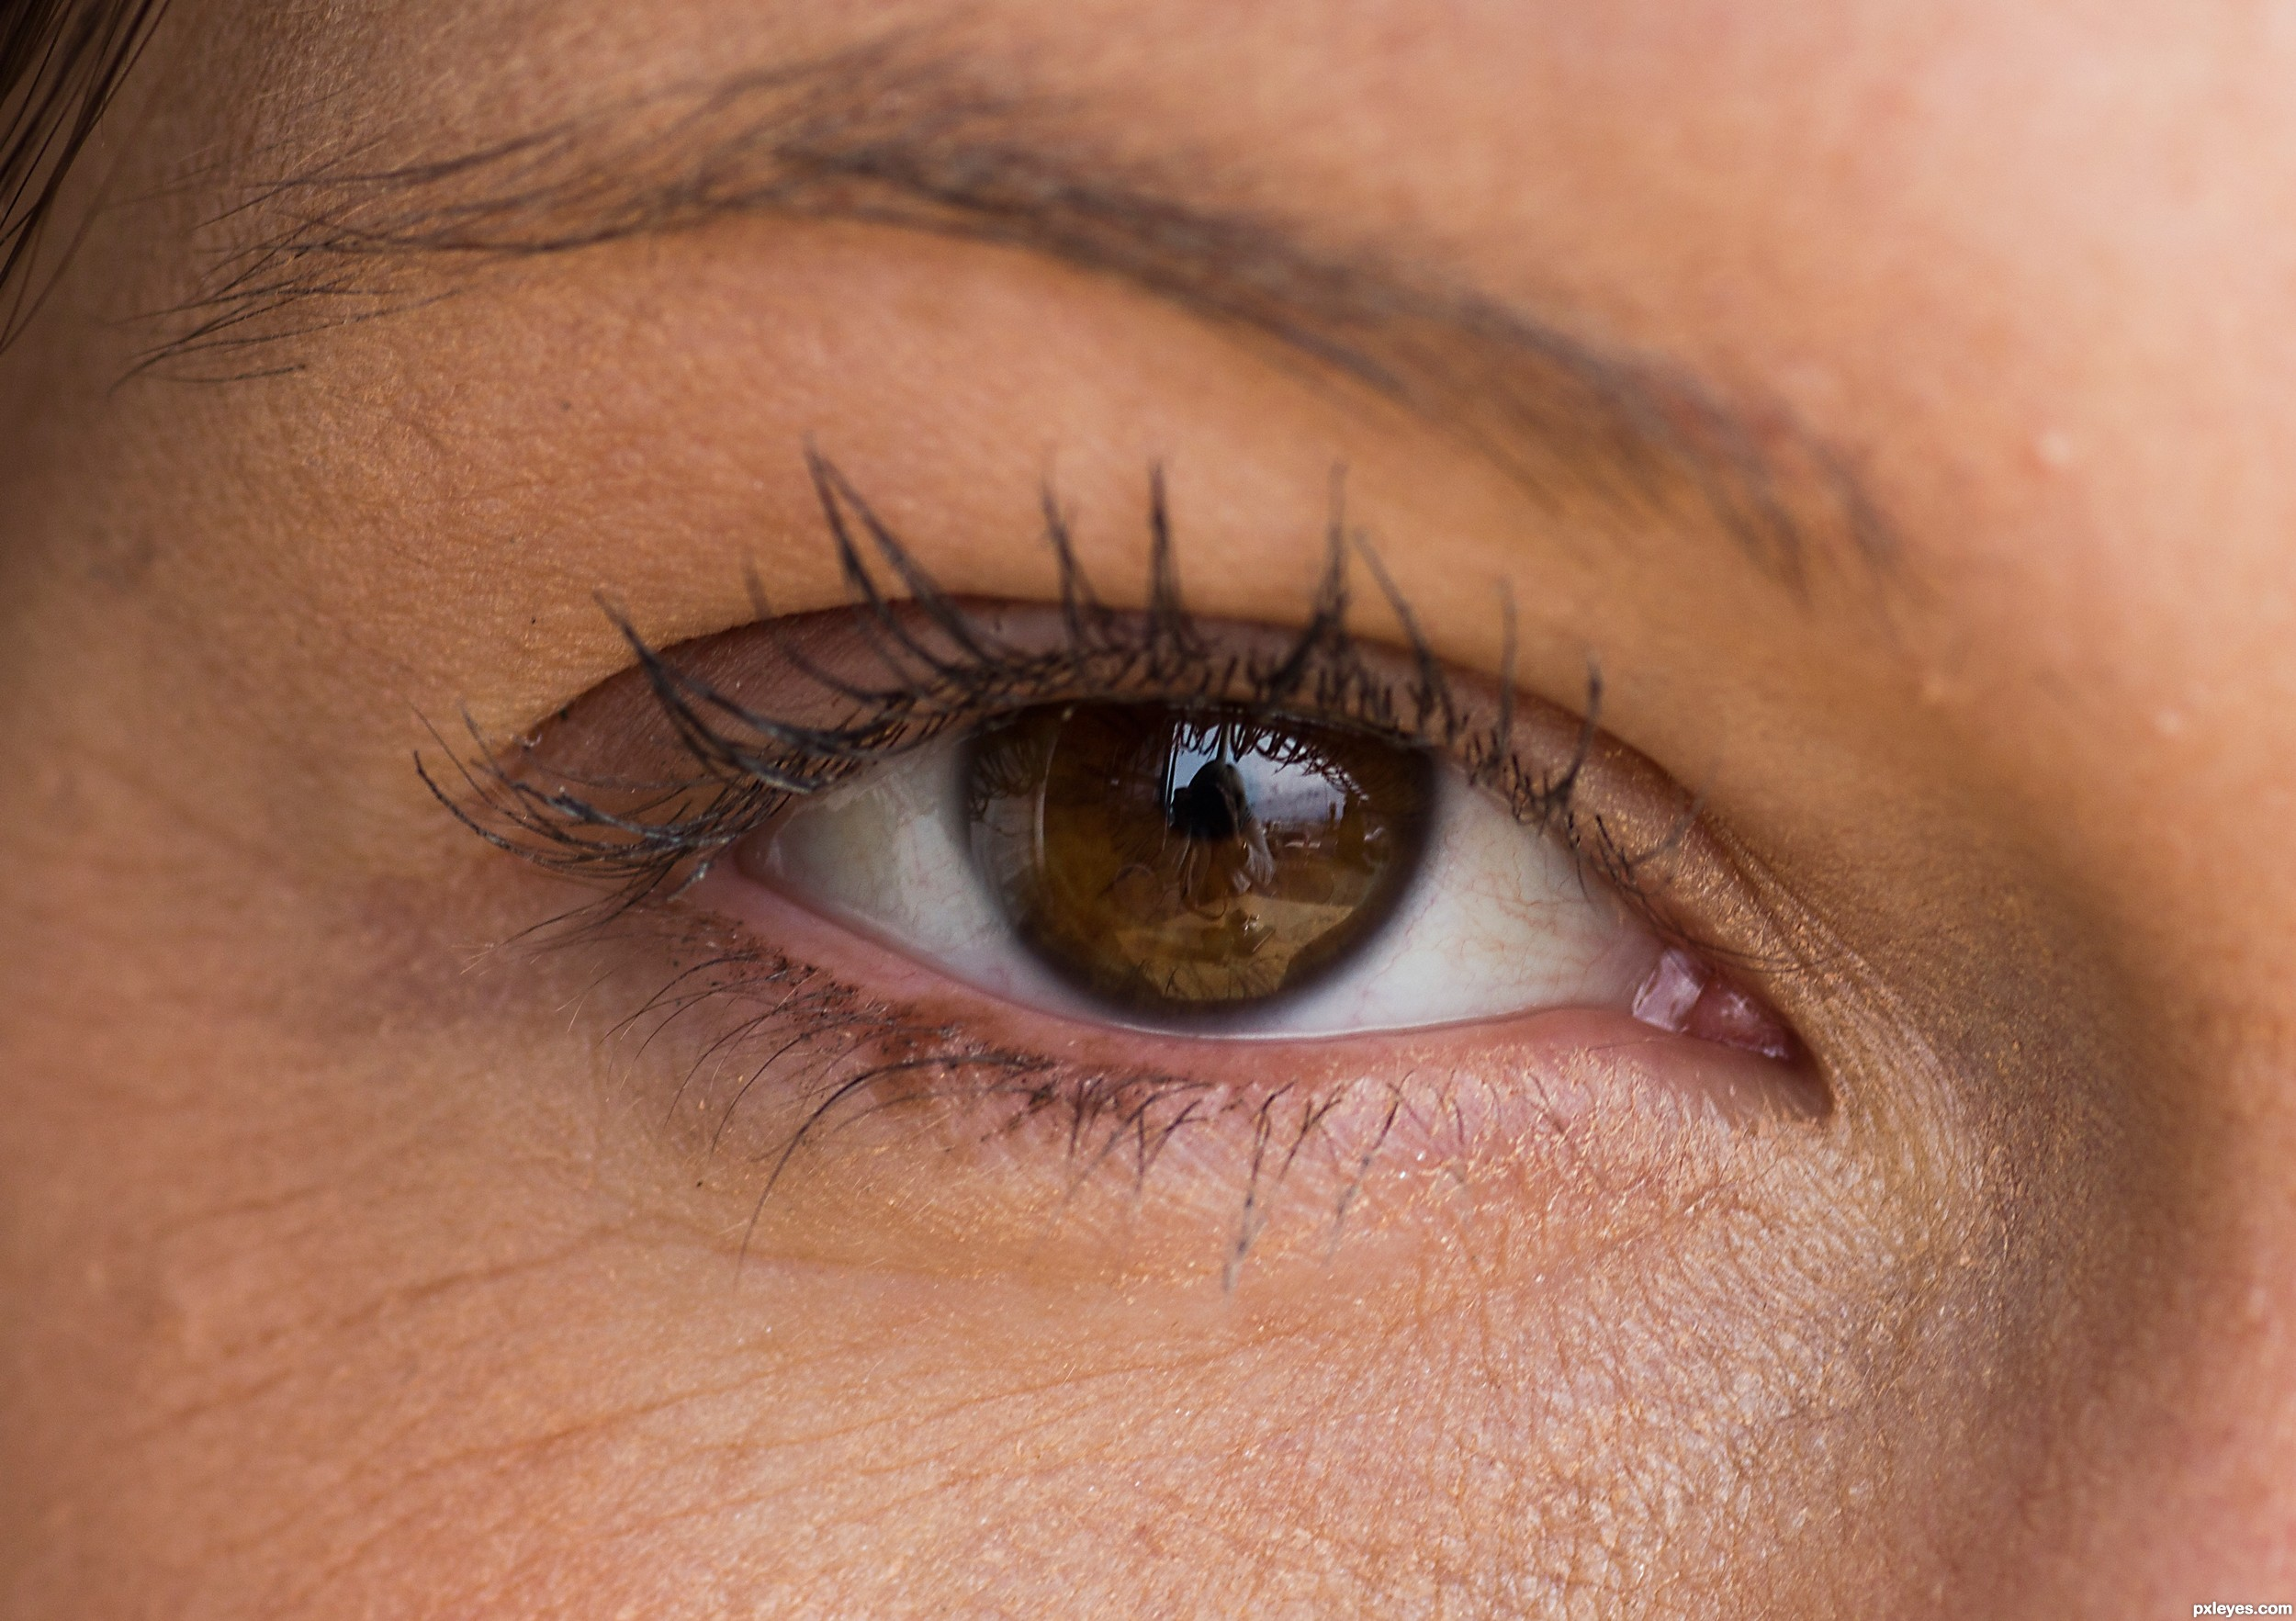 Brown Eye Close Up Stock Images, Royalty-Free Images ...